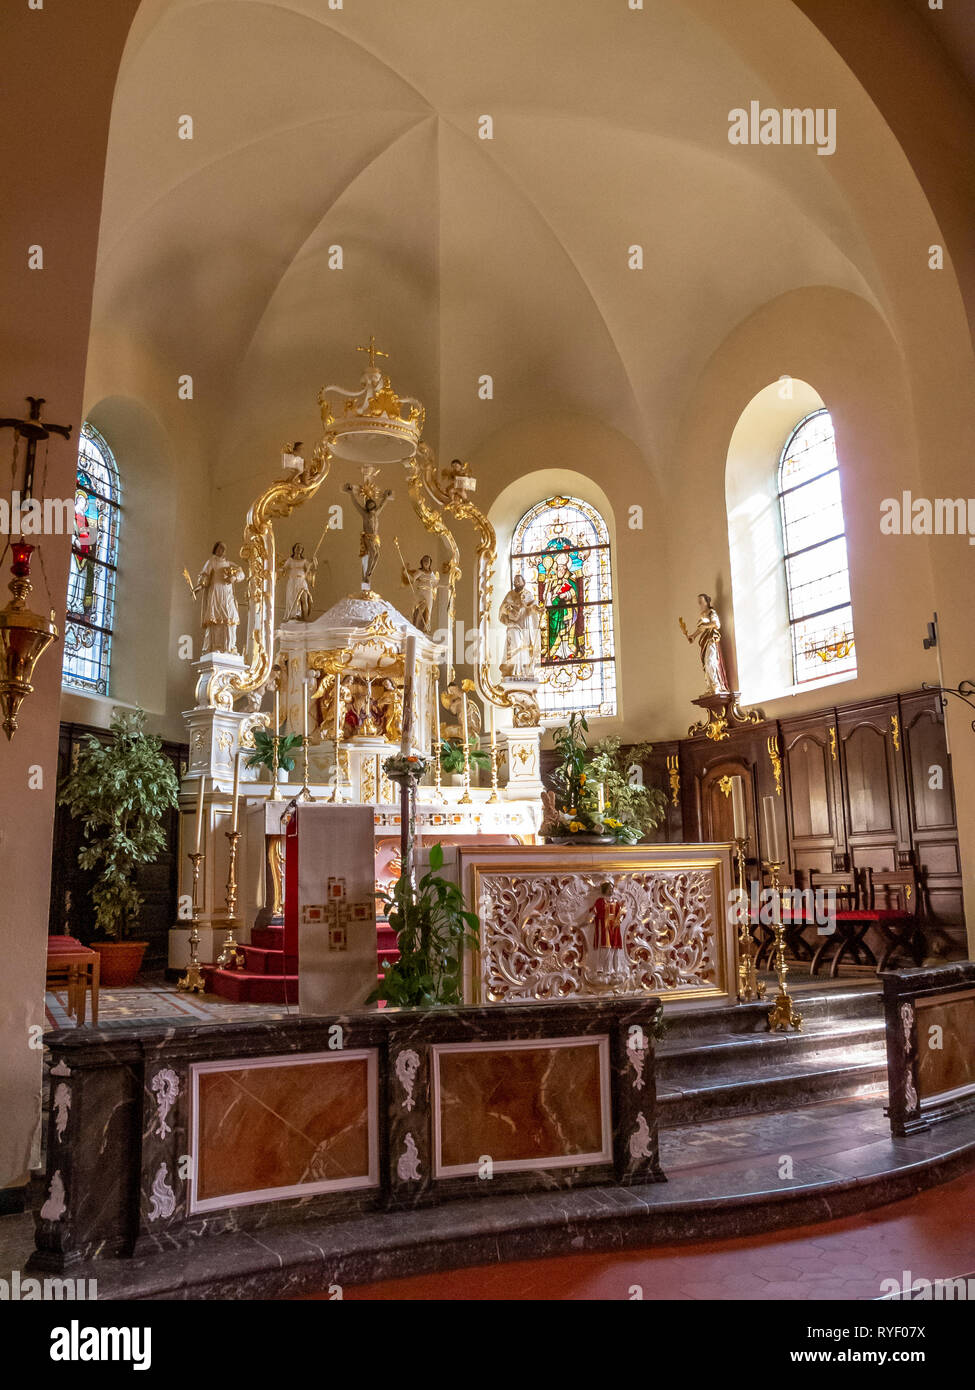 BURG-REULAND, BELGIUM - APRIL 01, 2013: Choir view with a canopy high altar at the Church of St. Stephen Stock Photo